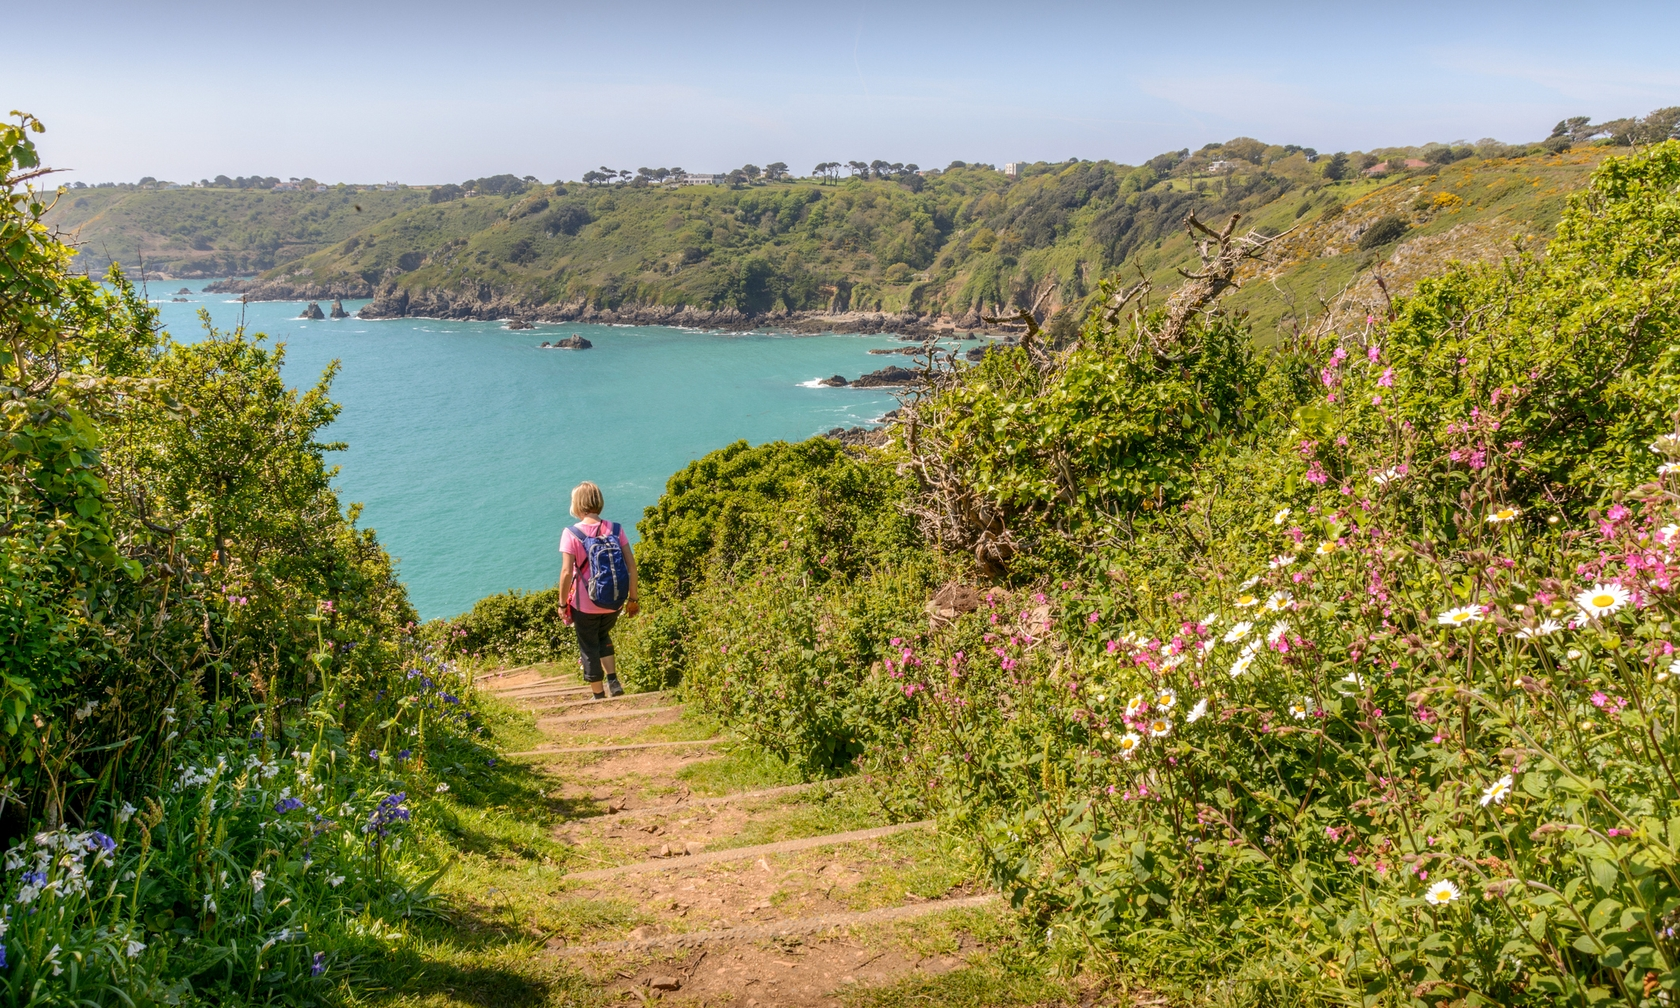 Holiday rentals in Guernsey